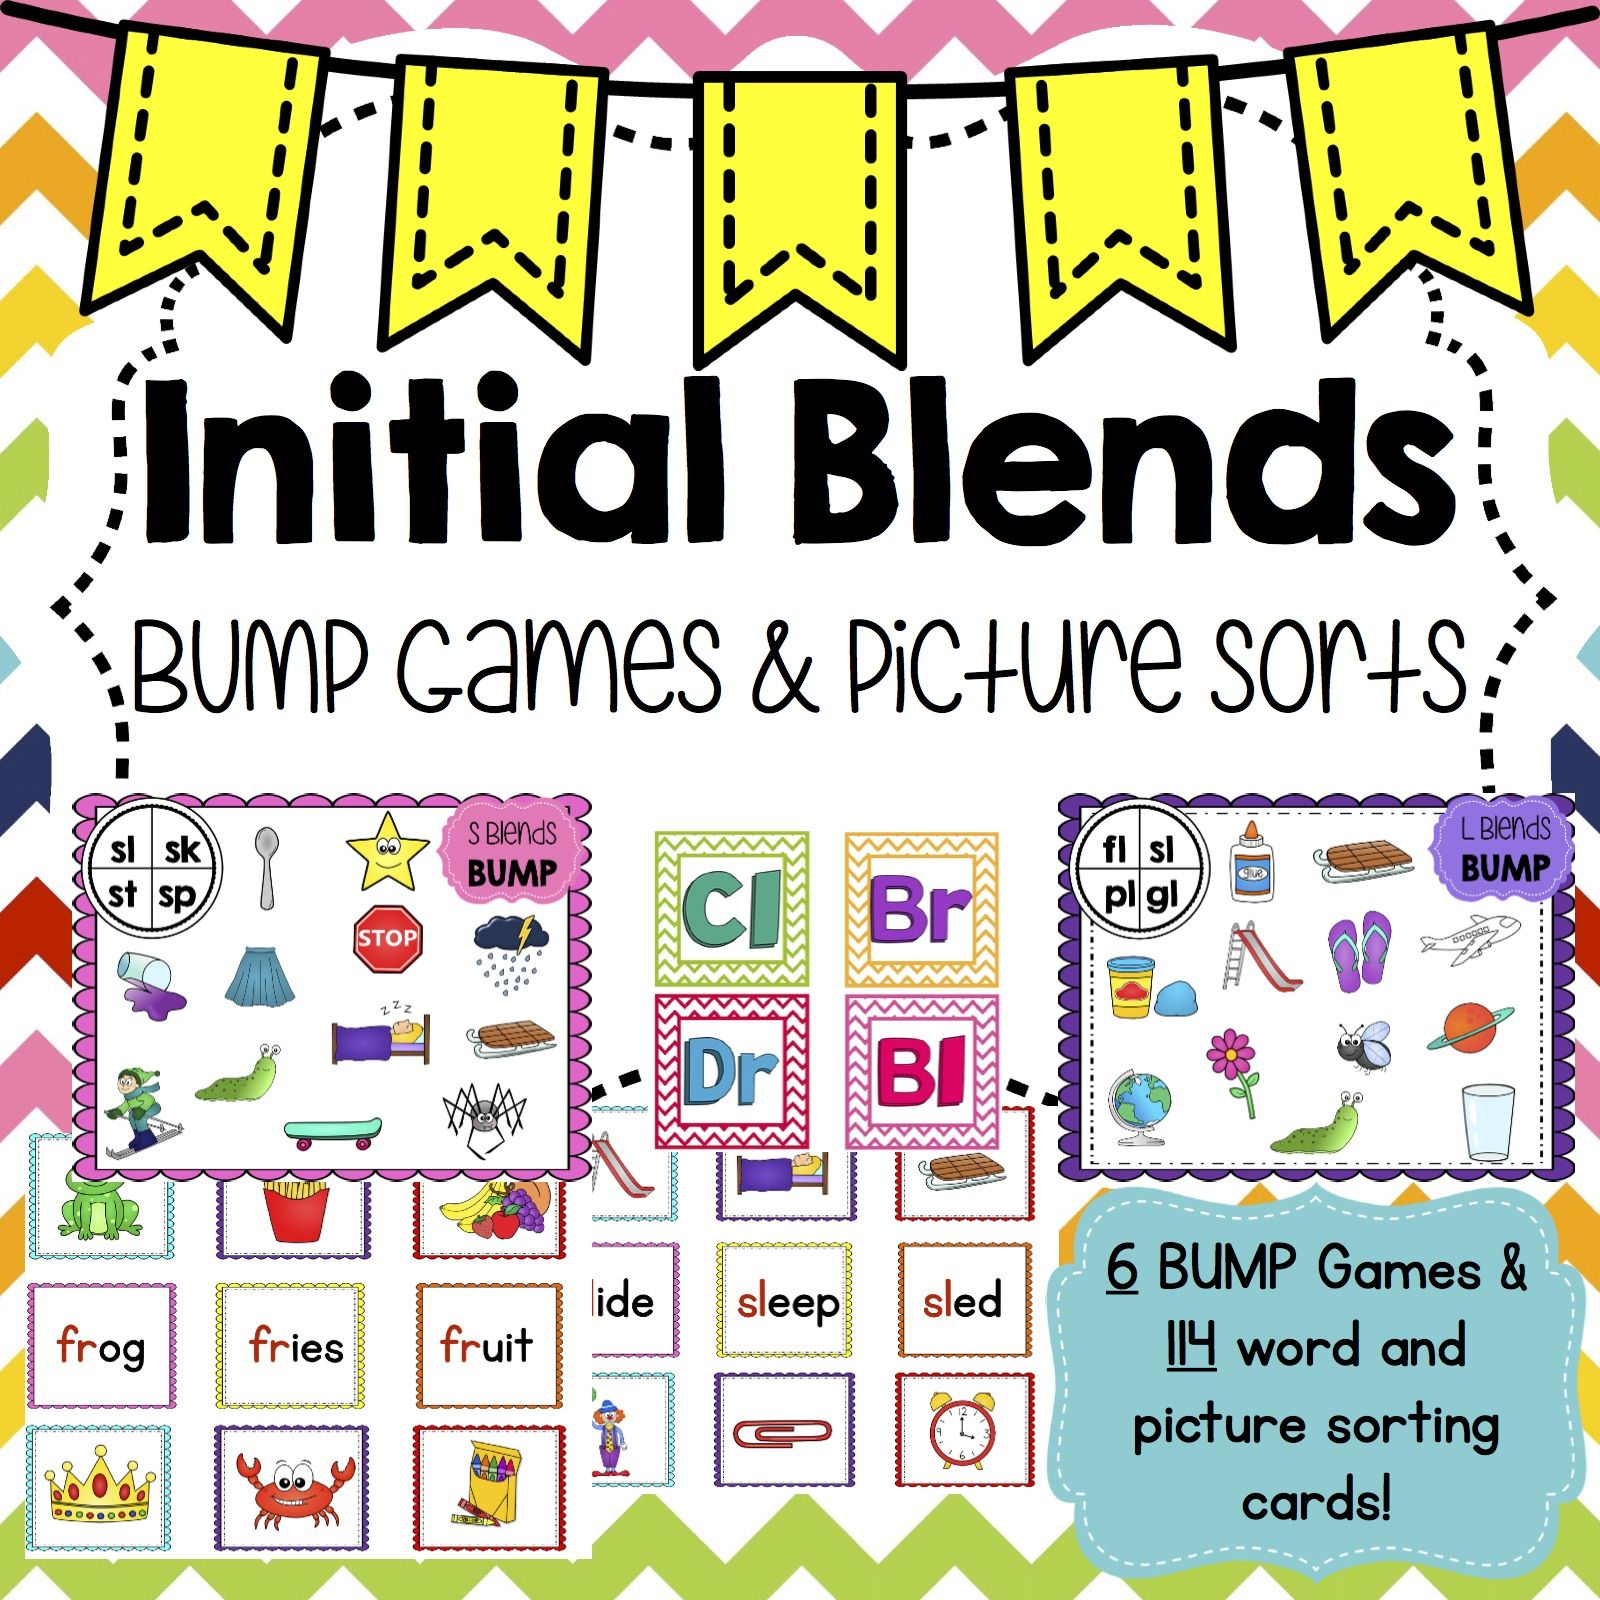 6 Bump Games And 114 Word And Picture Sort Cards